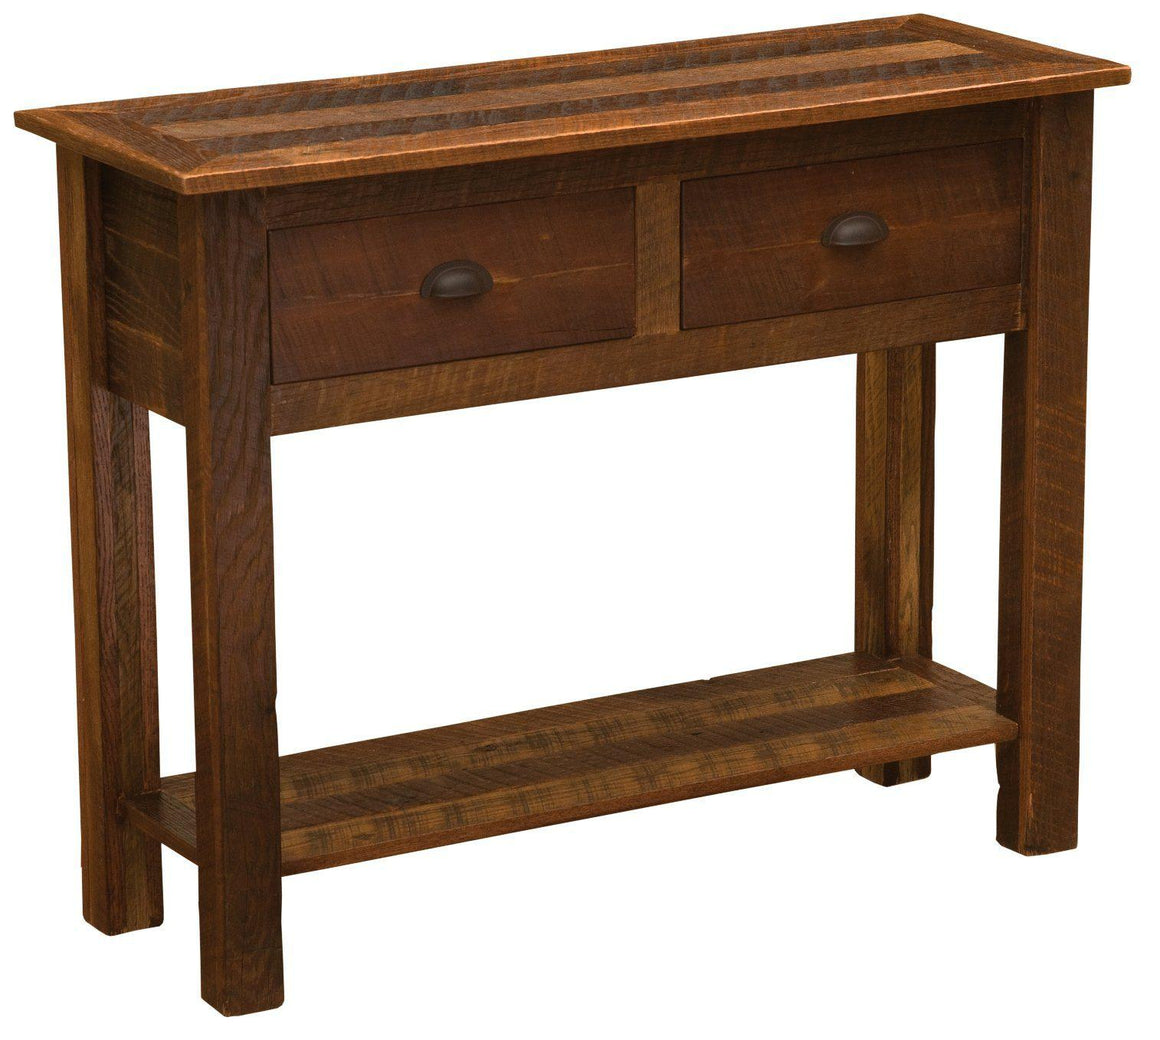 Barnwood Two Drawer Sofa Table with shelf - Barnwood Legs - Rustic Deco Incorporated